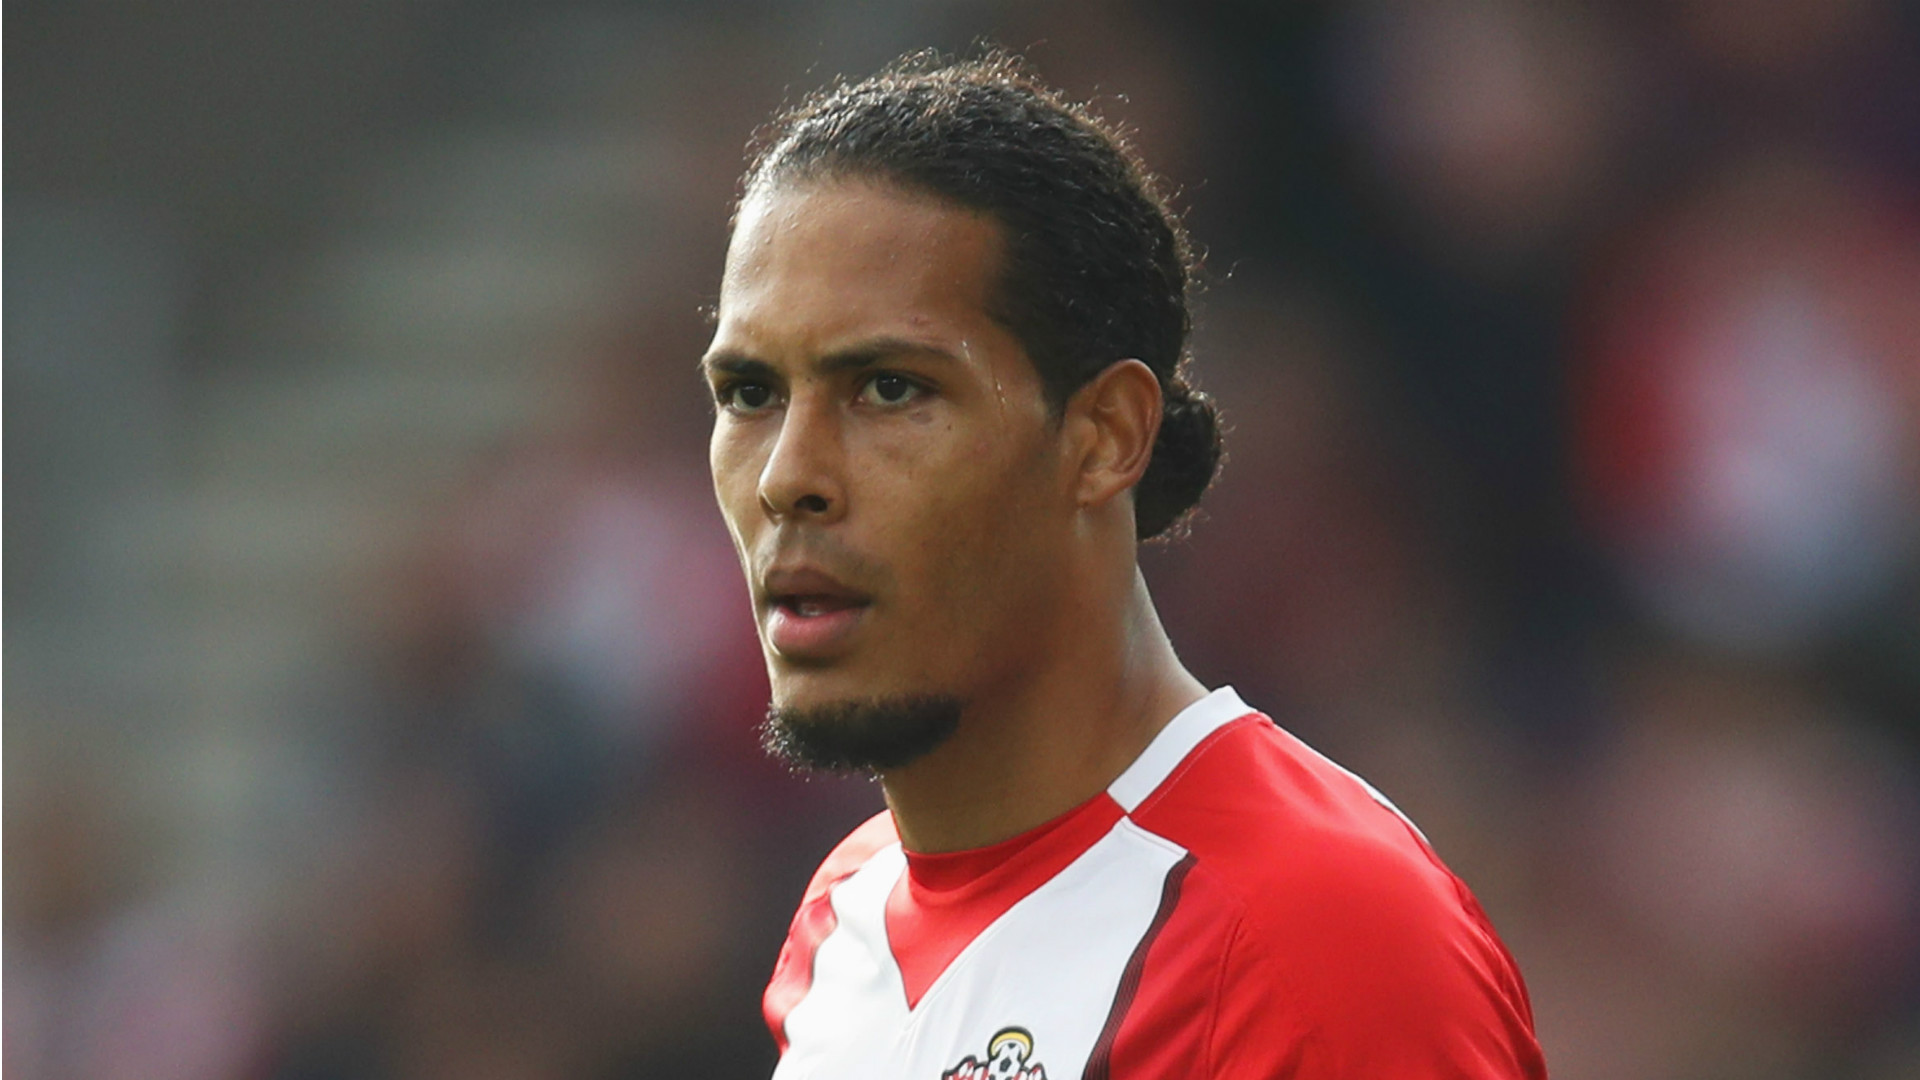 I'm happy, most importantly - Van Dijk is over failed Liverpool move